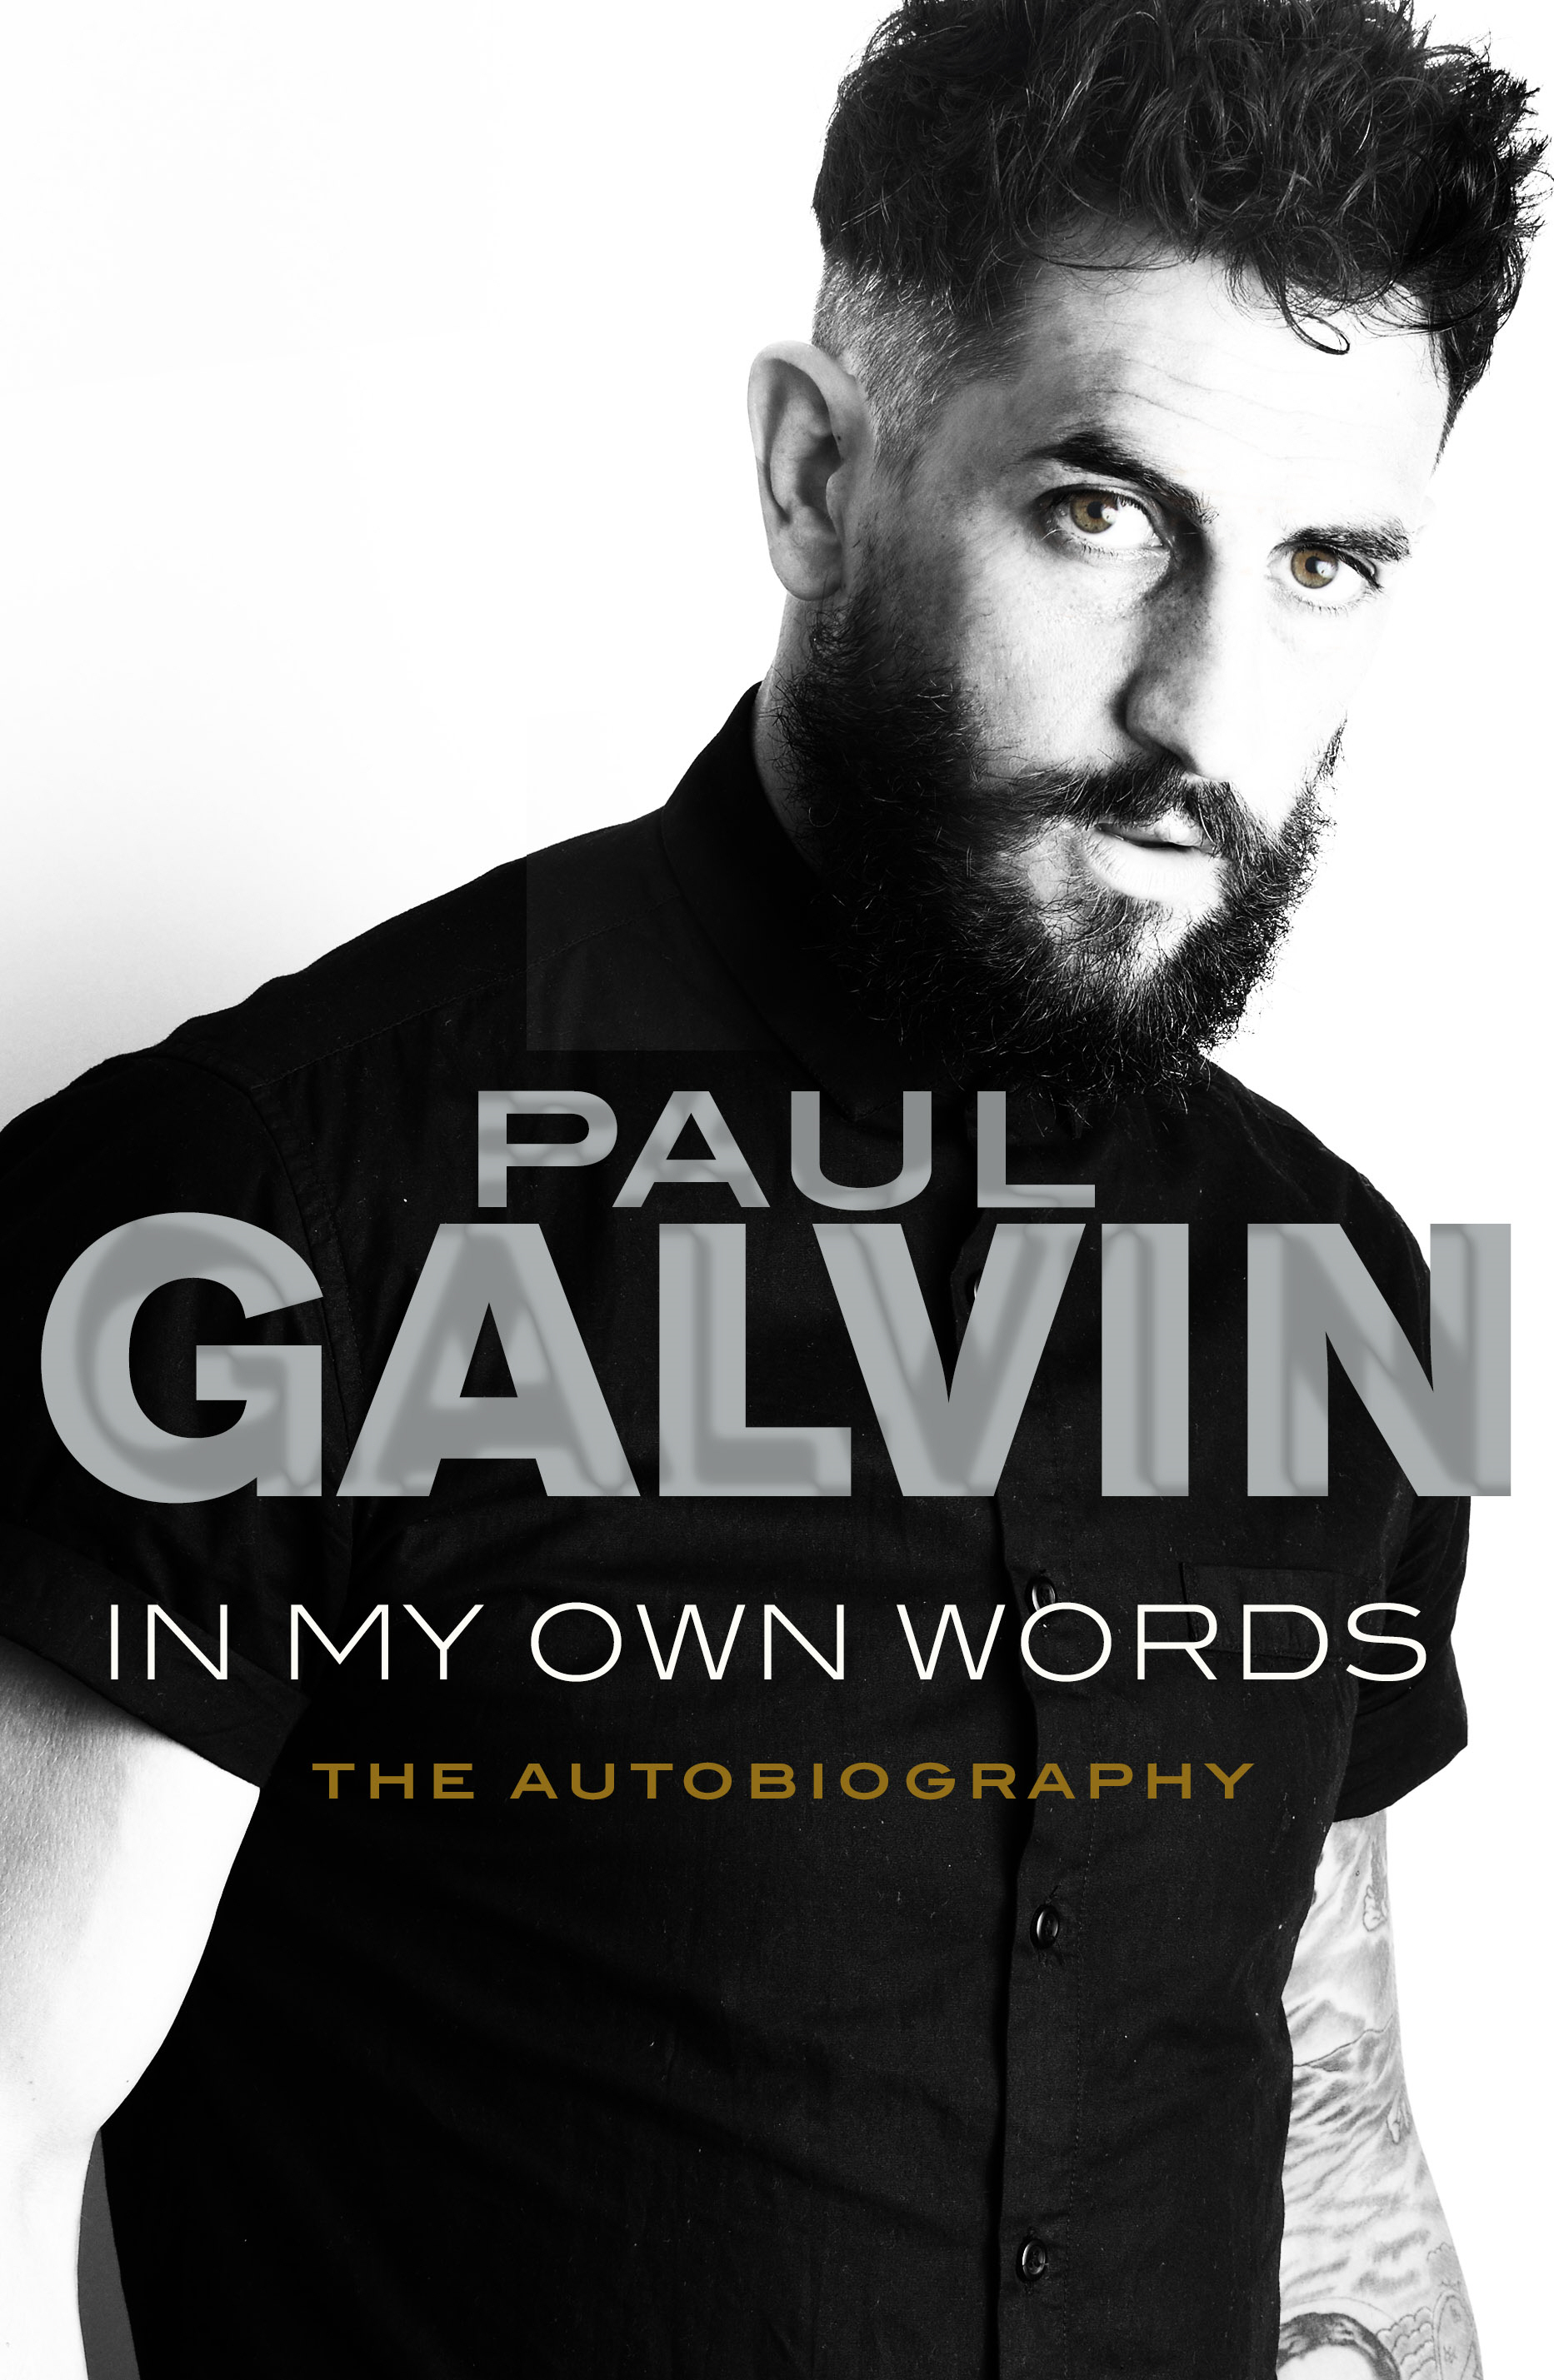 Paul Galvin: In My Own Words The Autobiography